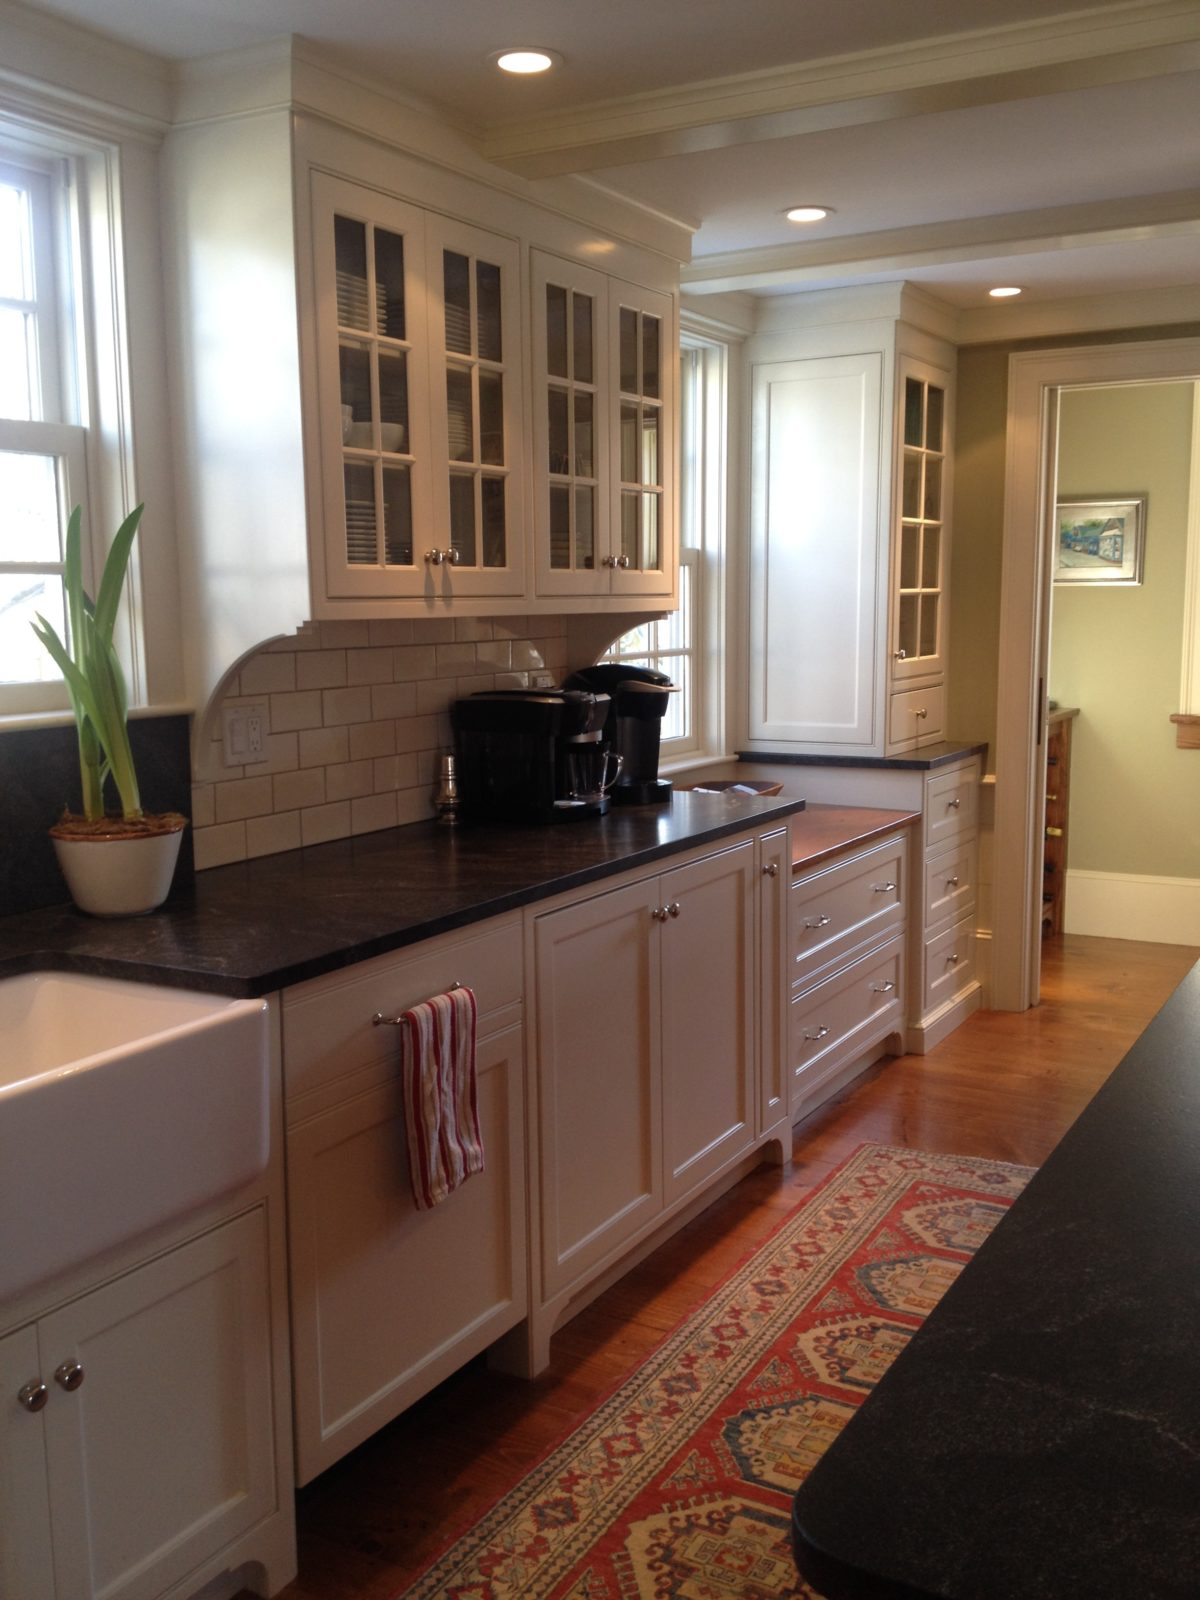 21st Century Kitchen Blended Into 19th Century Home Fine Homebuilding